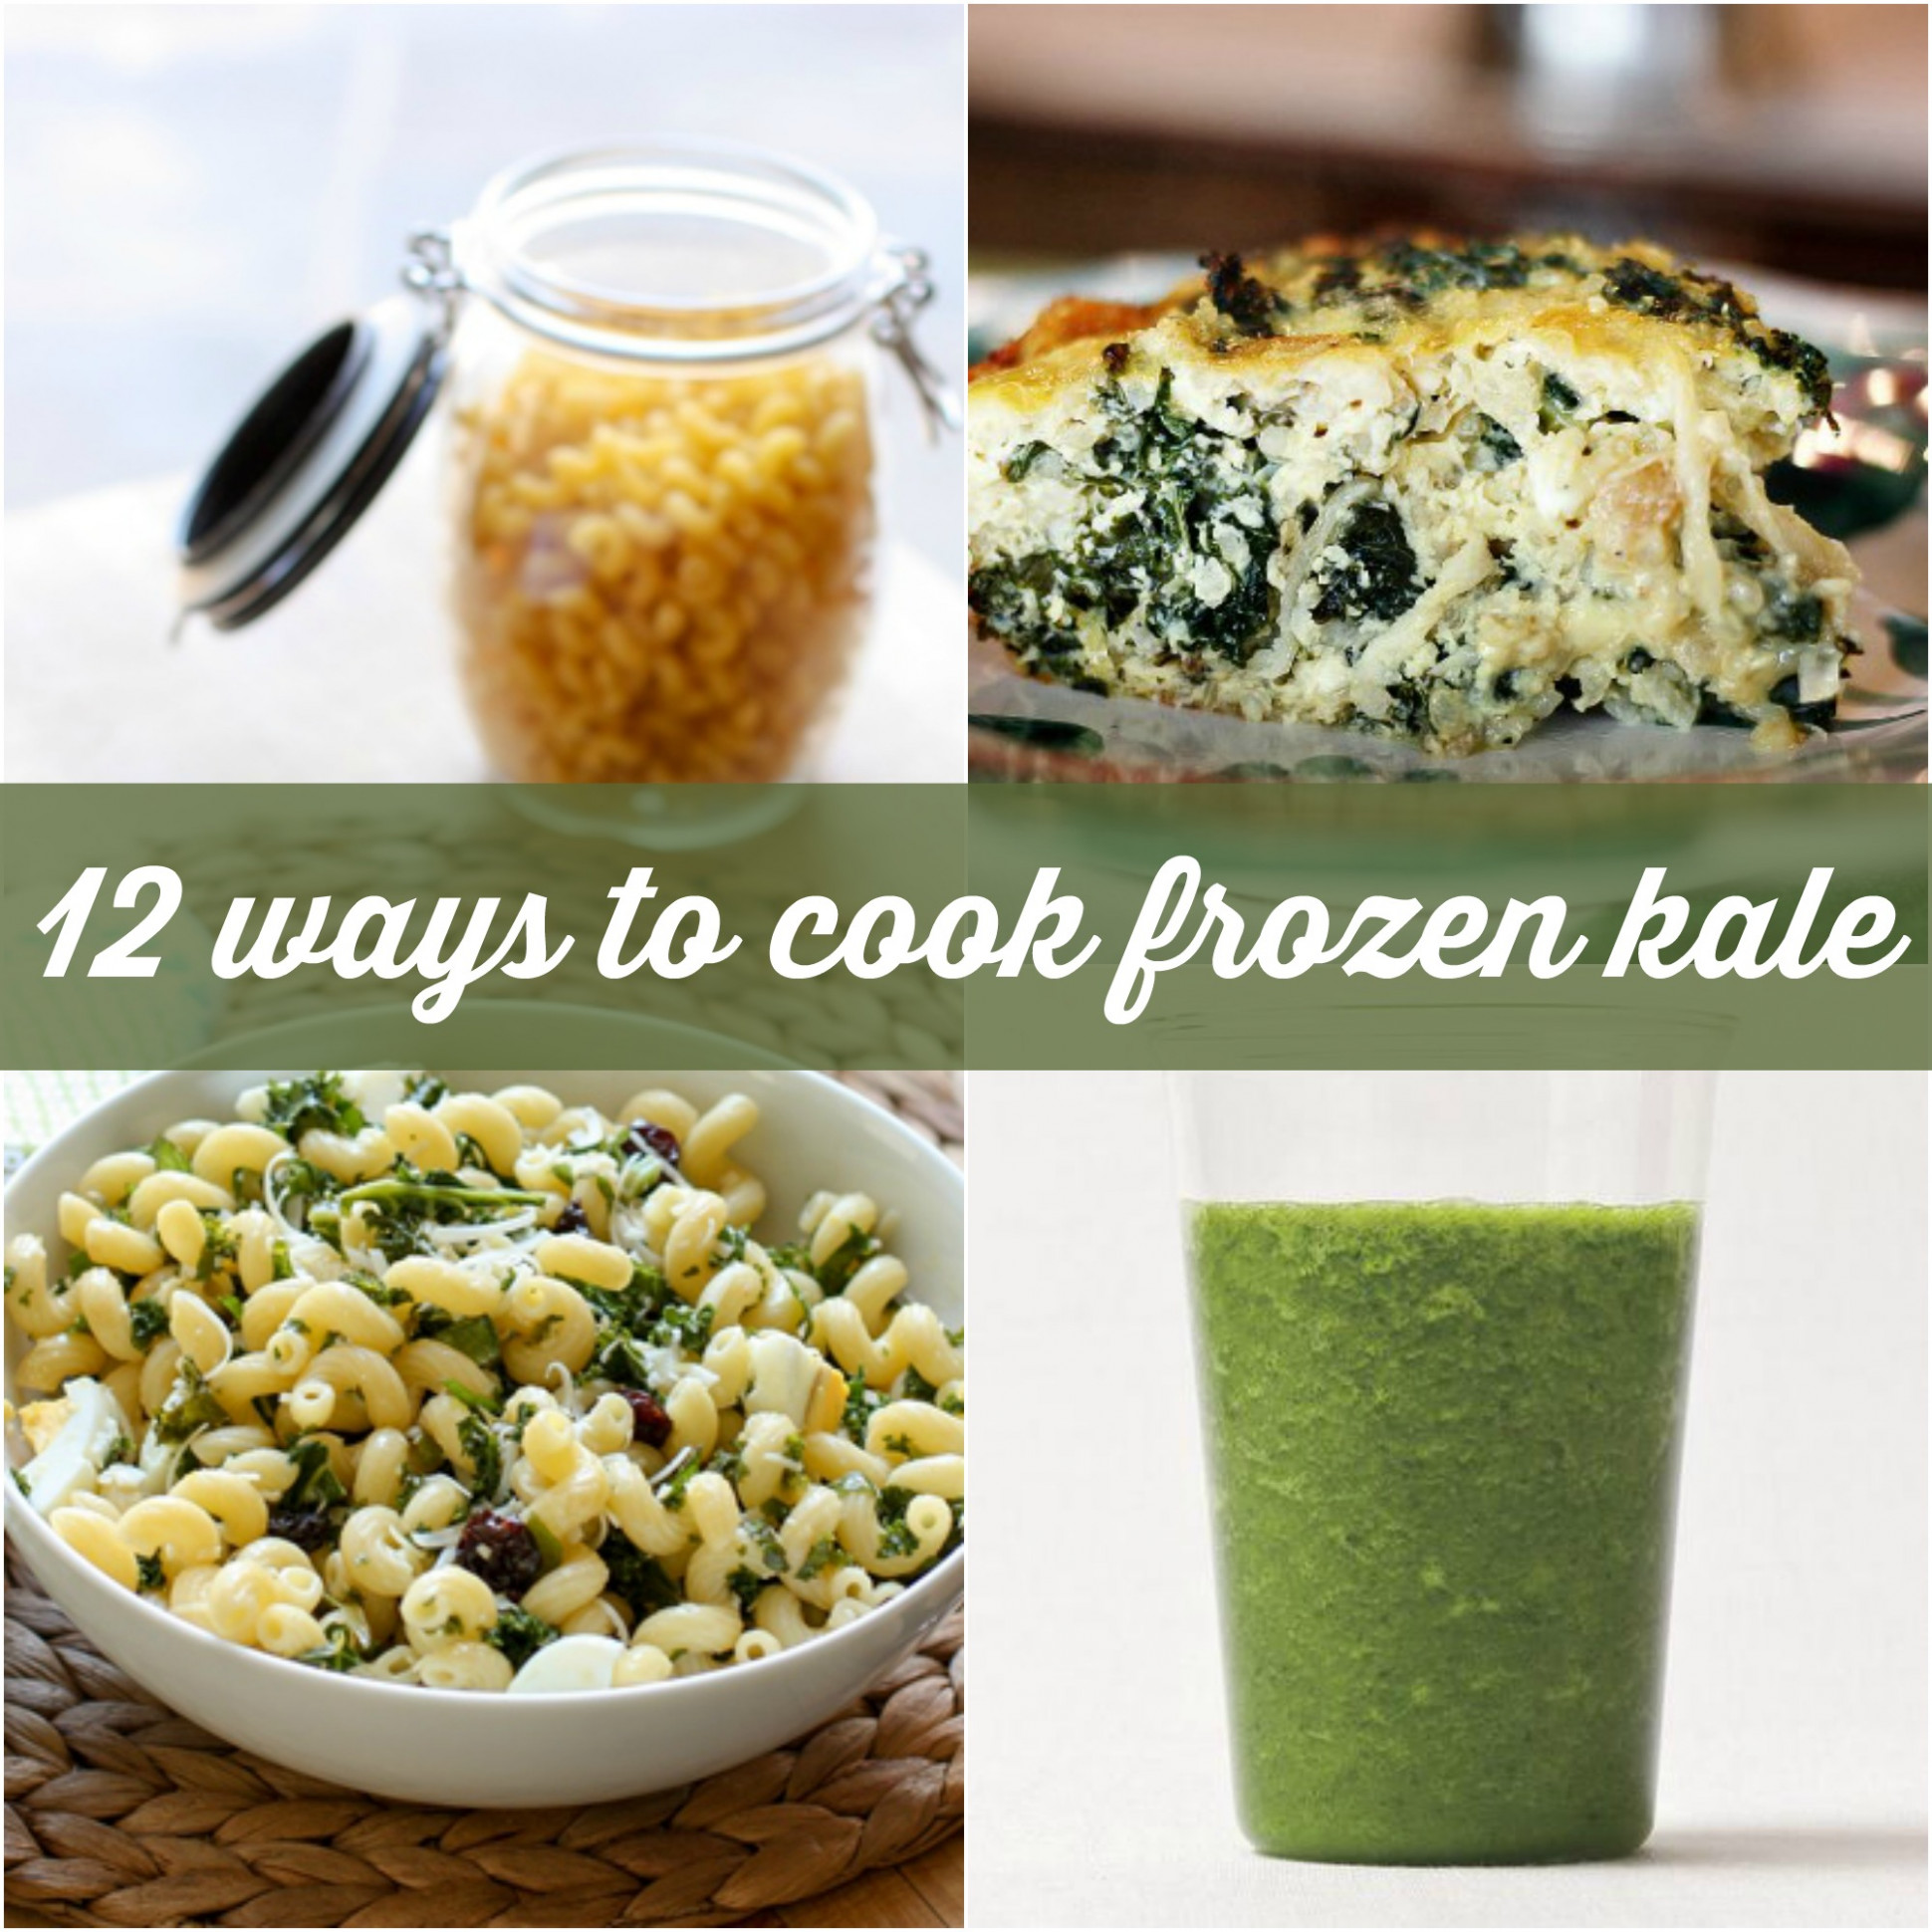 15 Delicious Ways To Cook With Frozen Kale | Food Confidence - dinner recipes kale